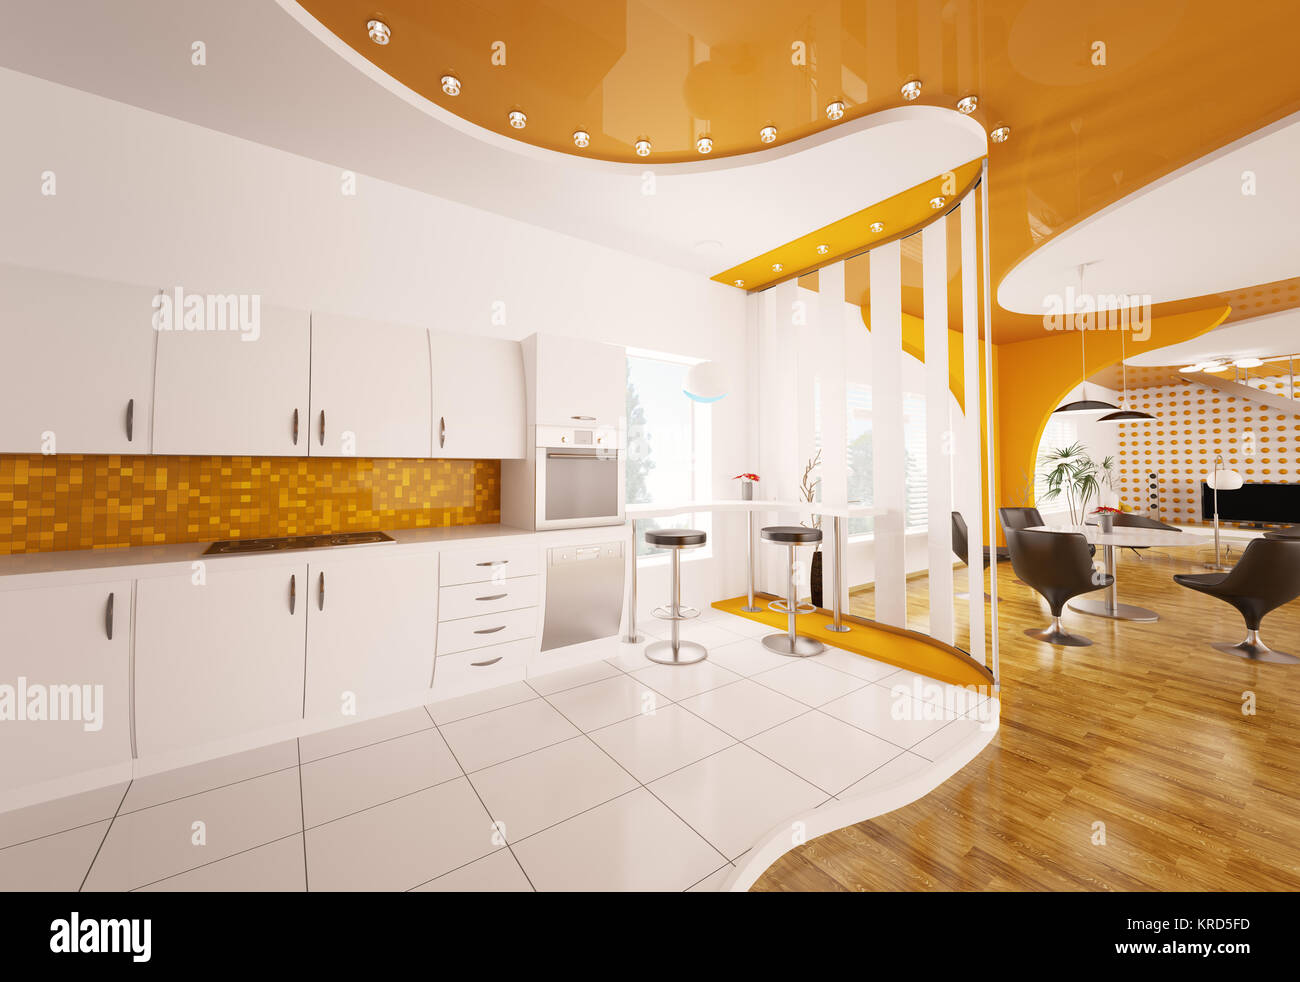 Küche Weiss Orange Interior Design Der Küche Weiß Orange 3d Render Stockfoto Bild